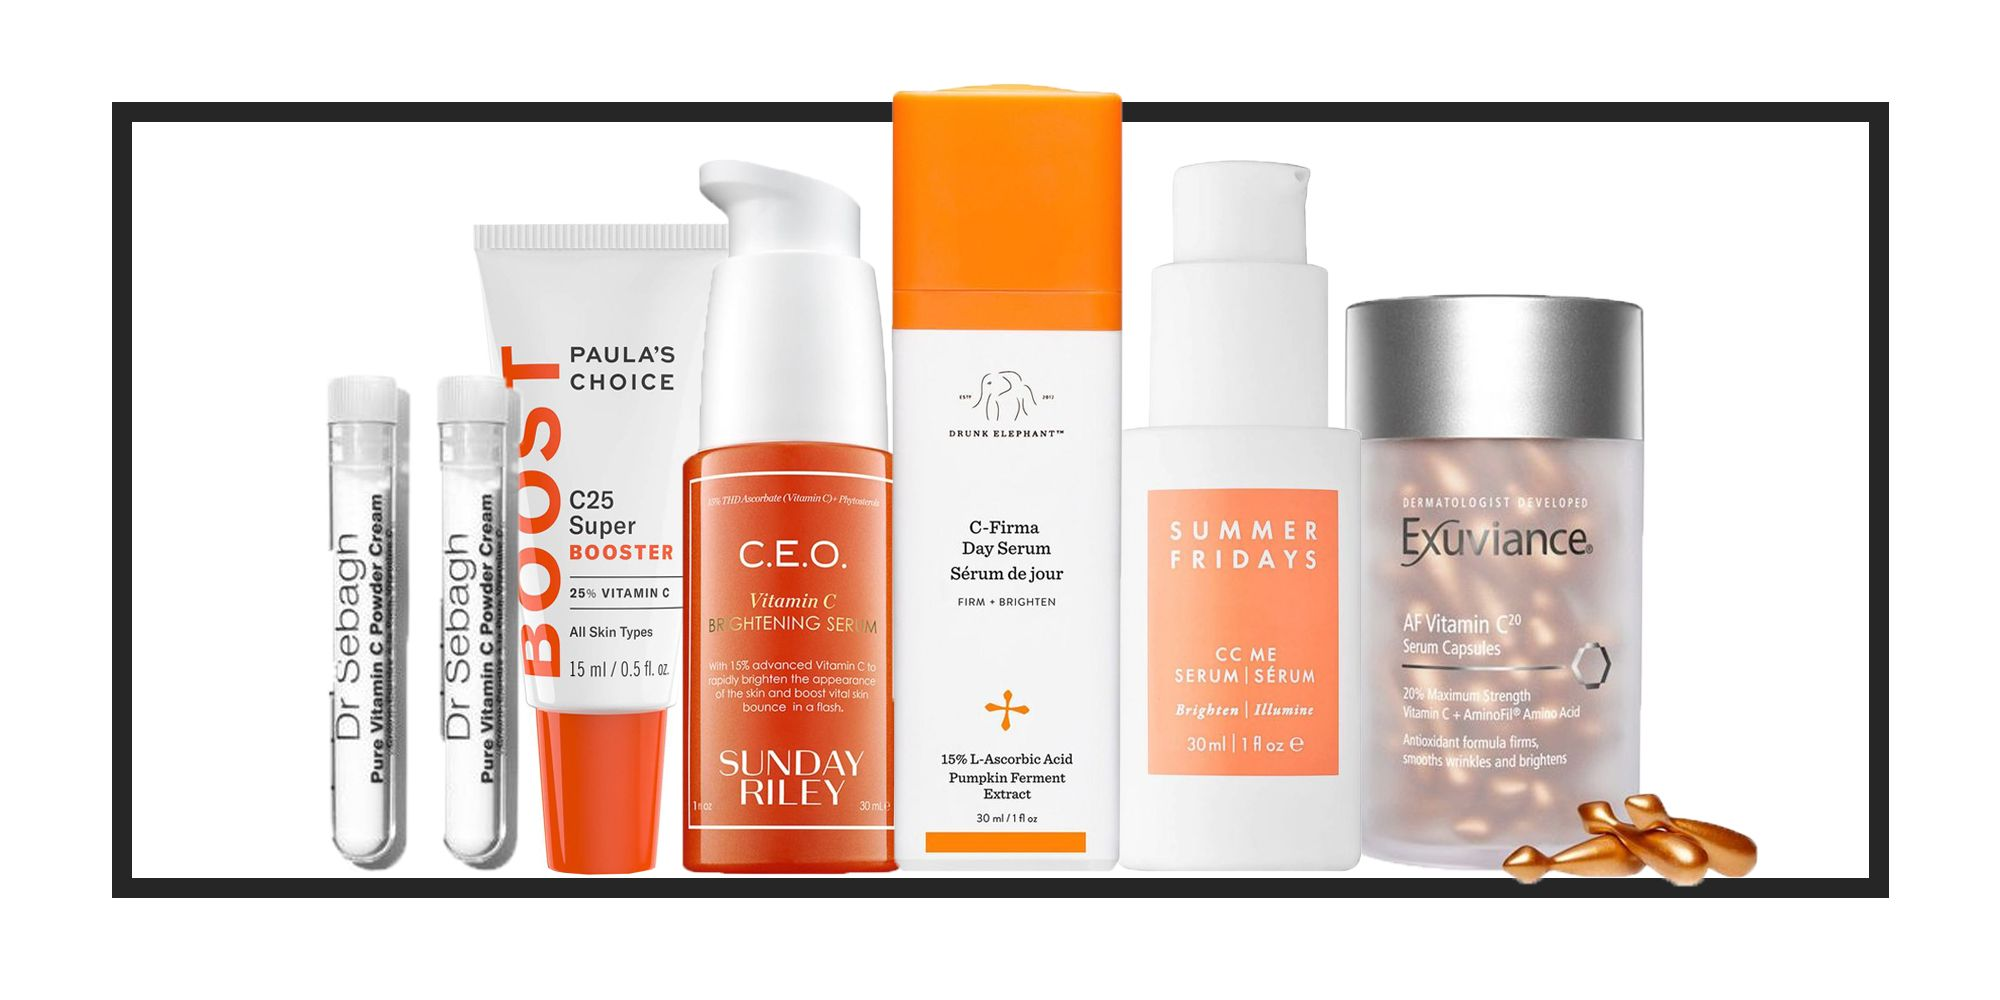 The 10 best vitamin C serums, treatments and creams